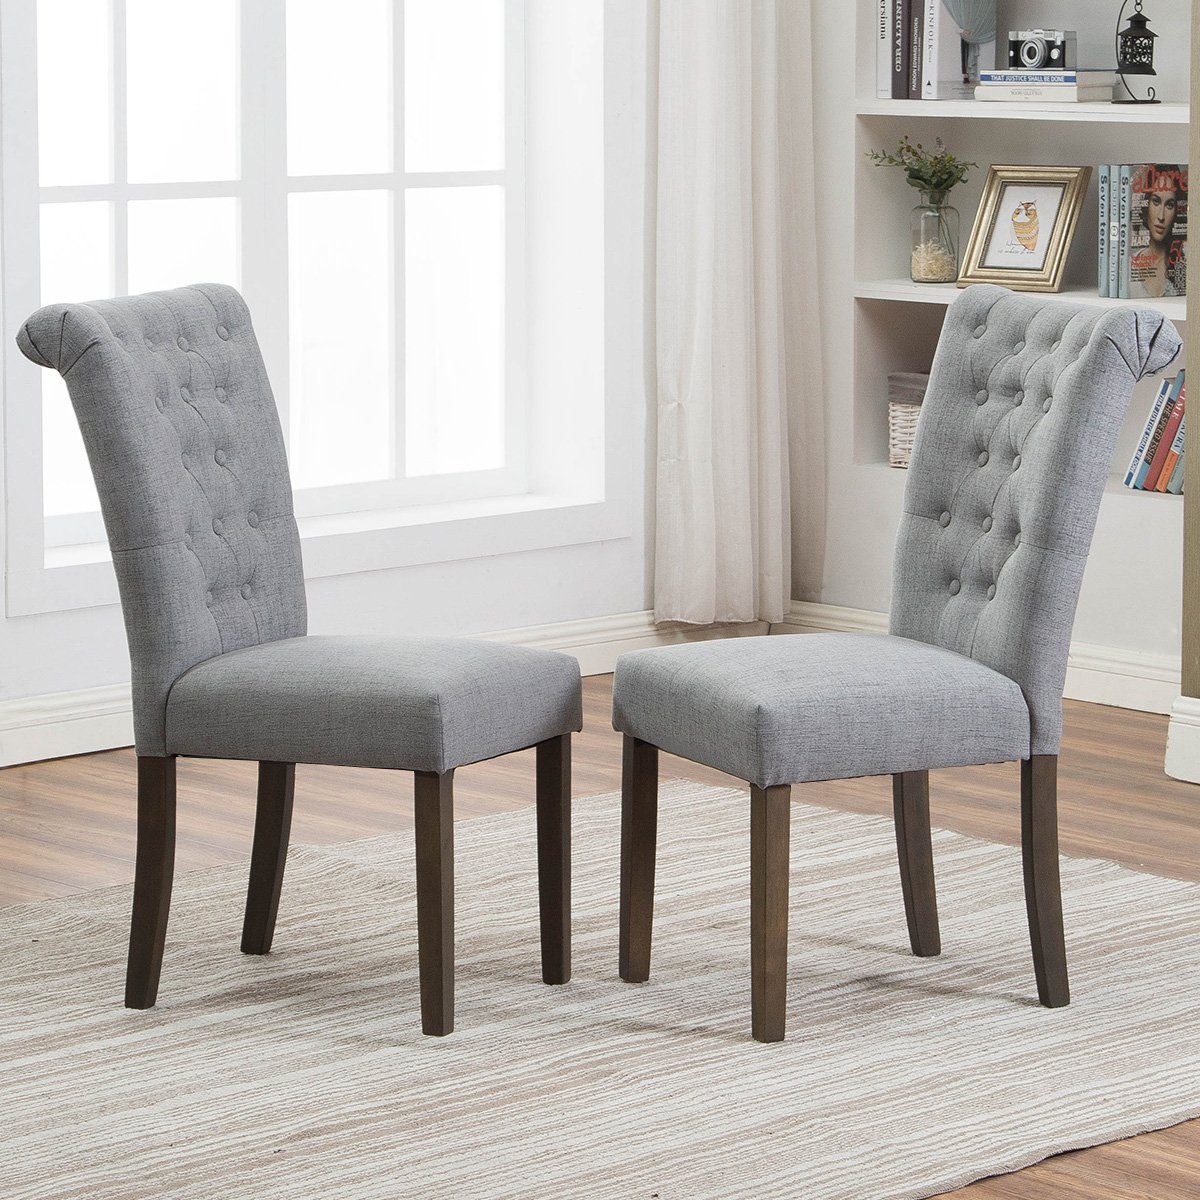 Merax Set of 2 Fabric Dining Chairs Solid Wood Legs, Gray WF015974EAA